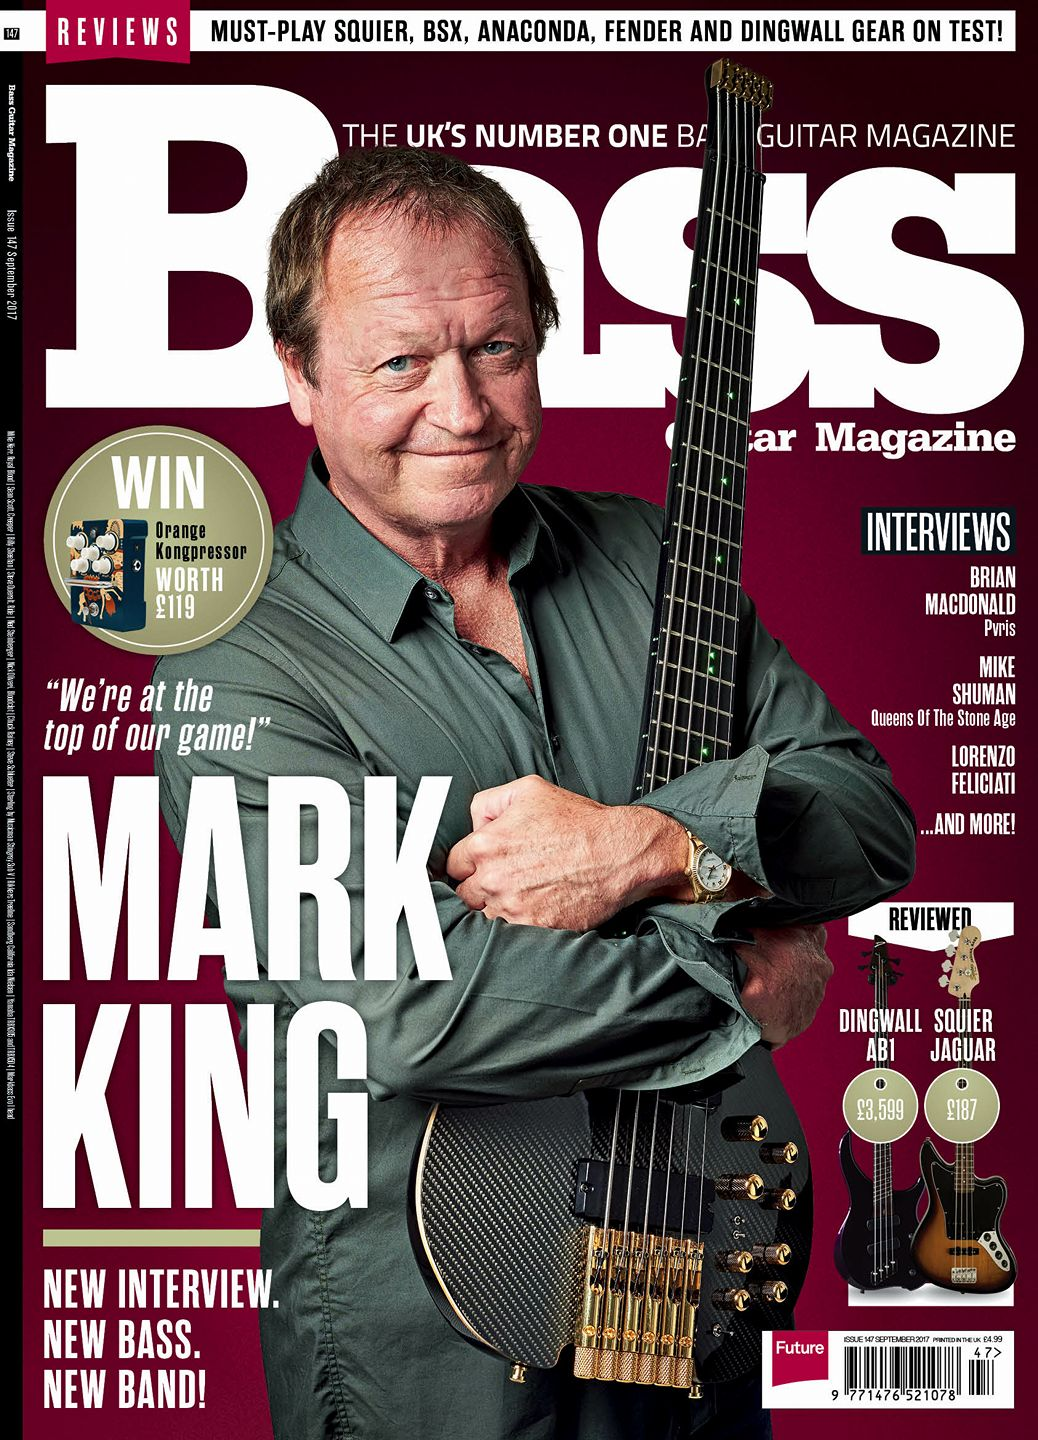 Bass Guitar Magazine September 2017 Level42